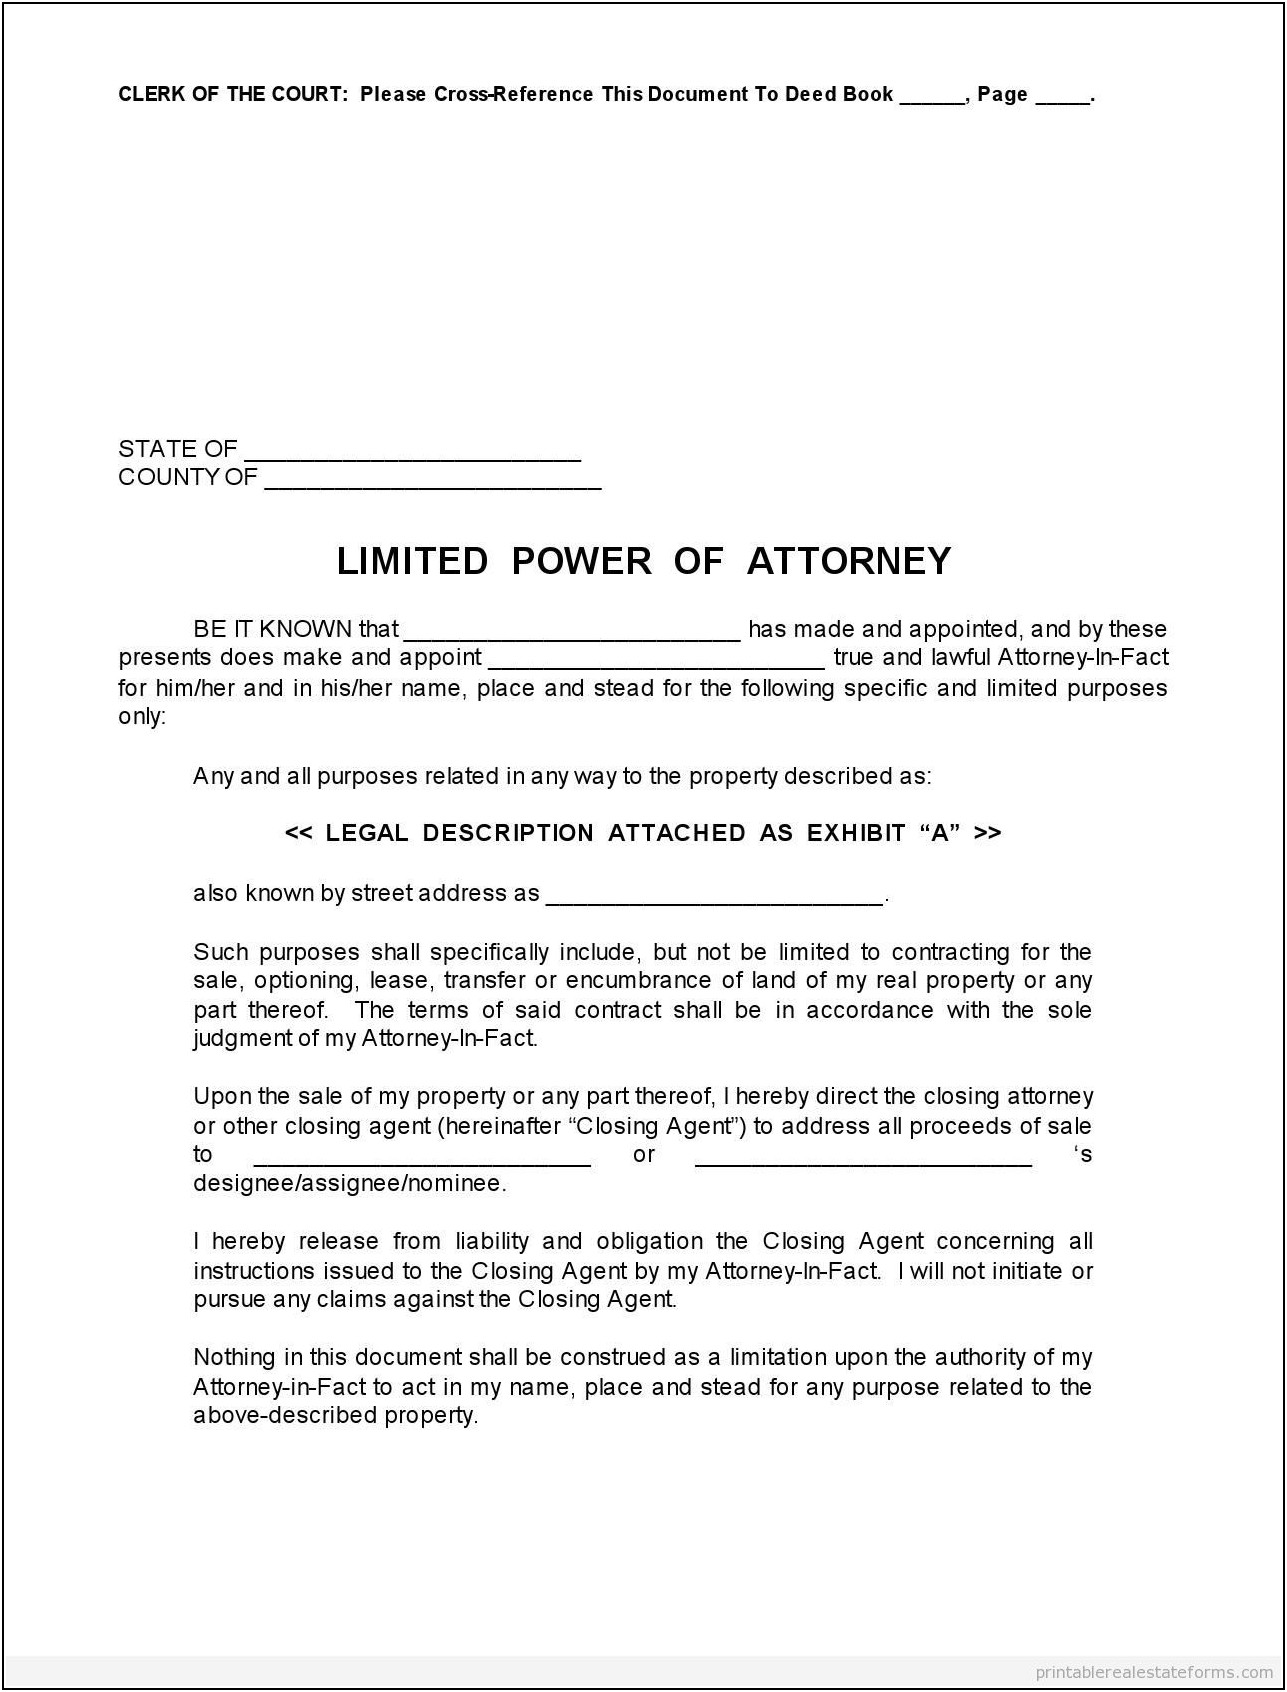 Printable Power Of Attorney Resignation Letter Template